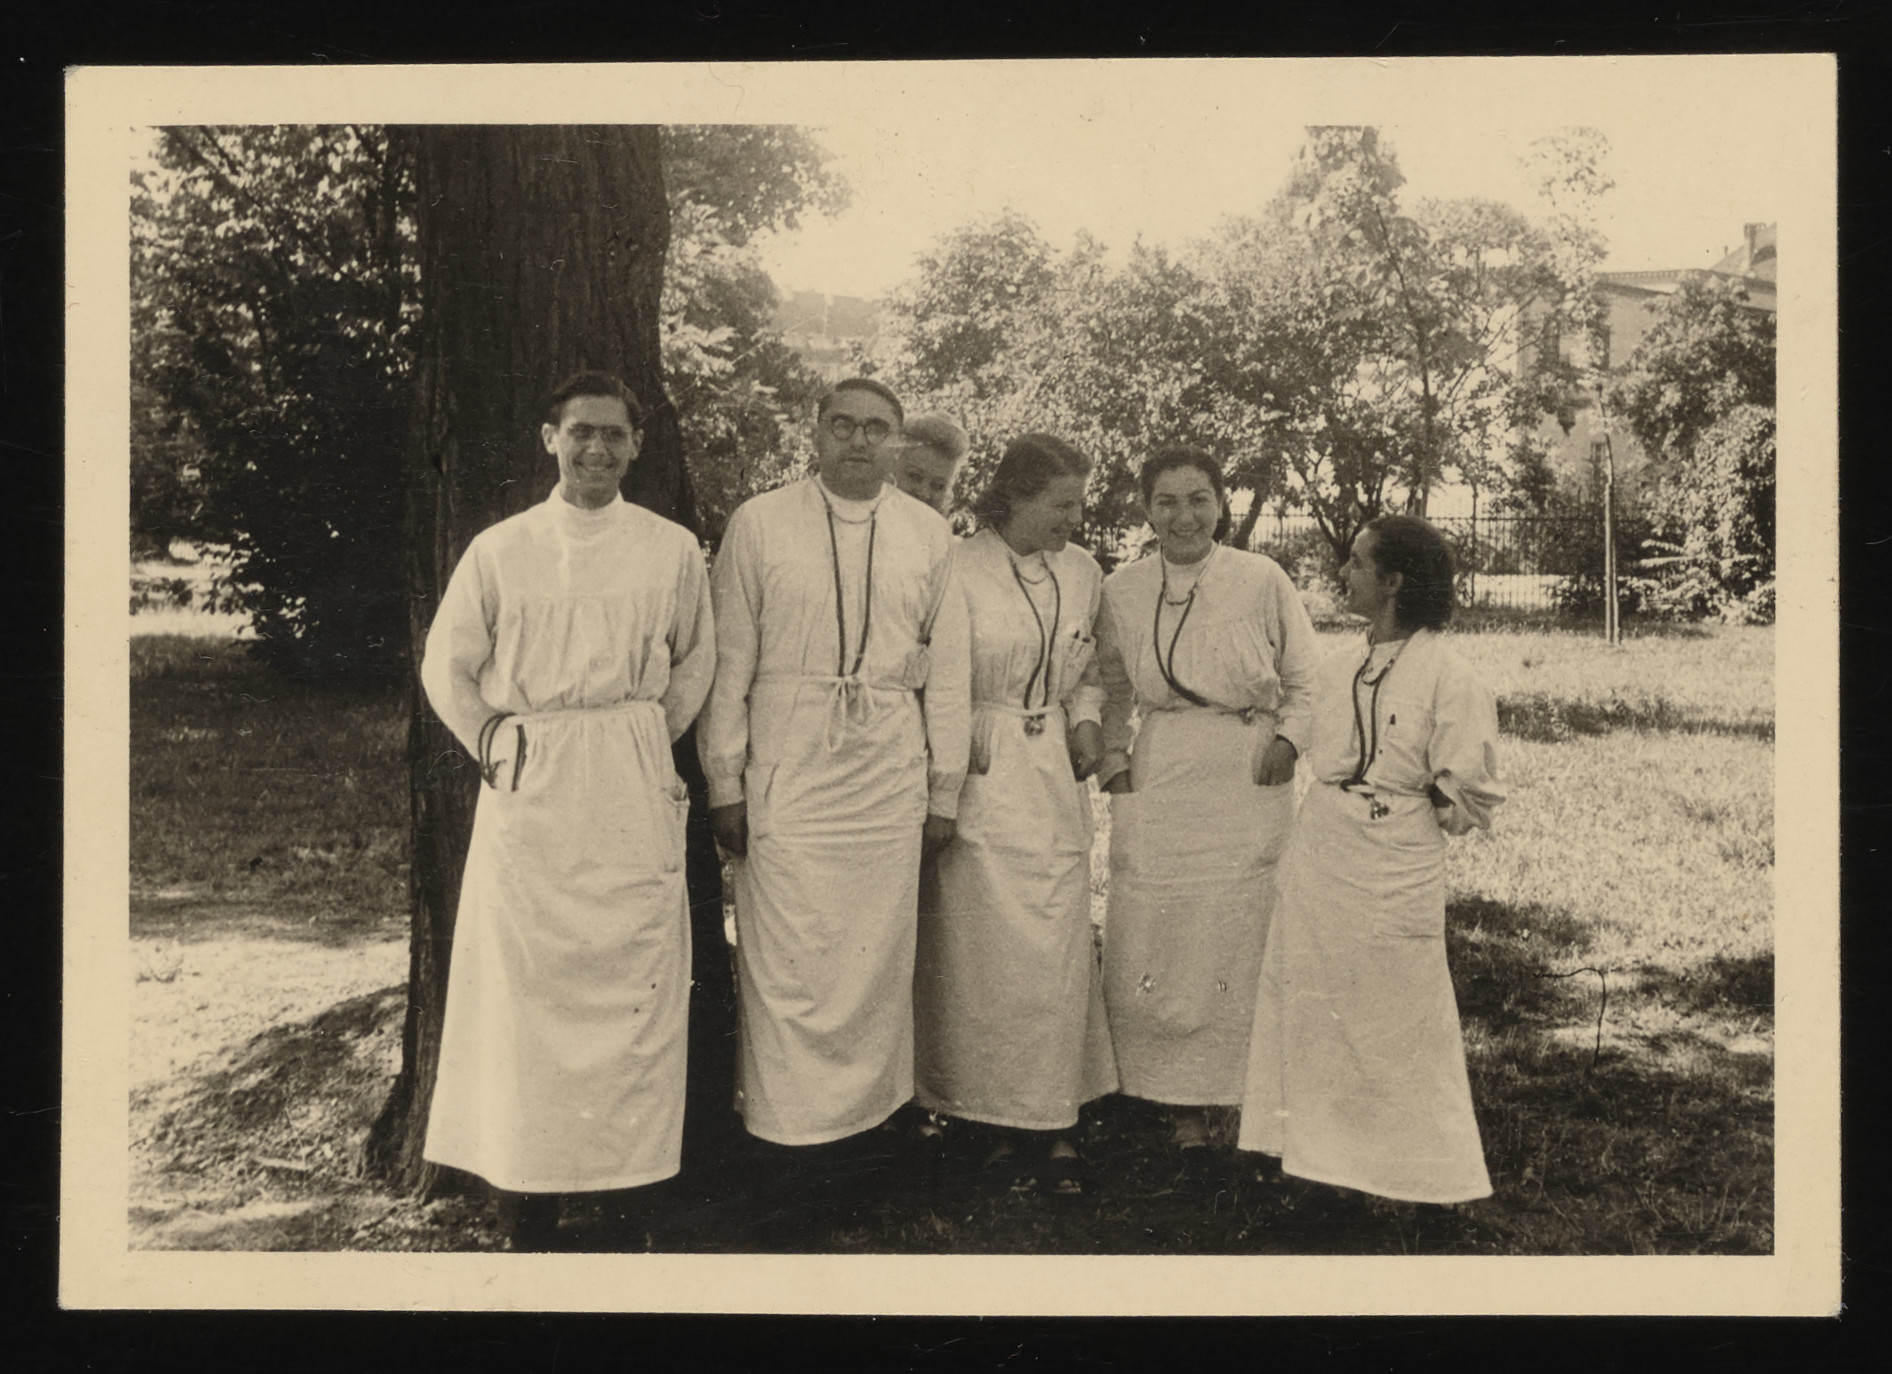 Group portrait of Jewish medical students in Heidelberg.  Among those pictured are Anna Ornstein (far right) and Lucy Hornstein (second from right).